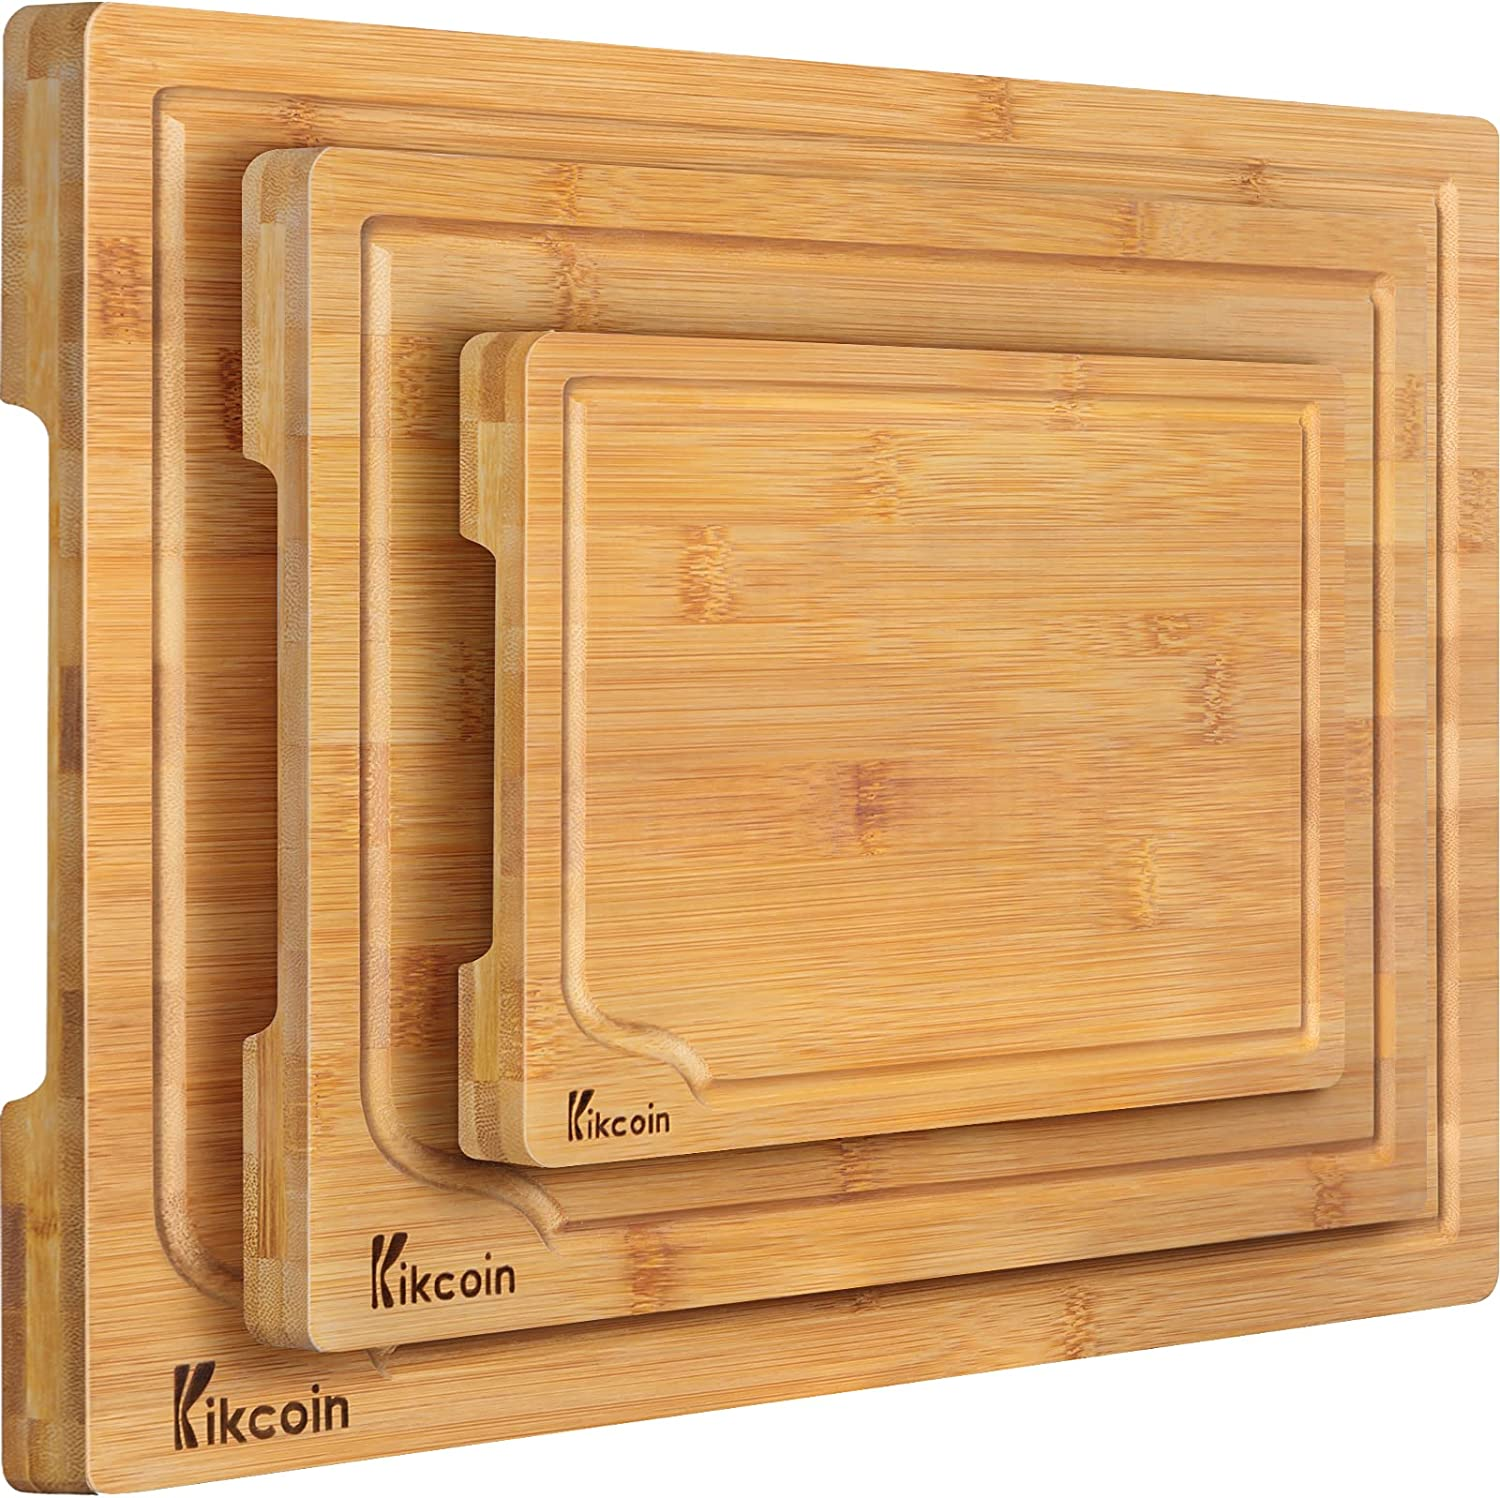 Bamboo Cutting Board, 3-Piece Kitchen Chopping Board with Juice Groove and Handles Heavy Duty Serving Tray Wood Butcher Block and Wooden Carving Board, Extra Large, Kikcoin